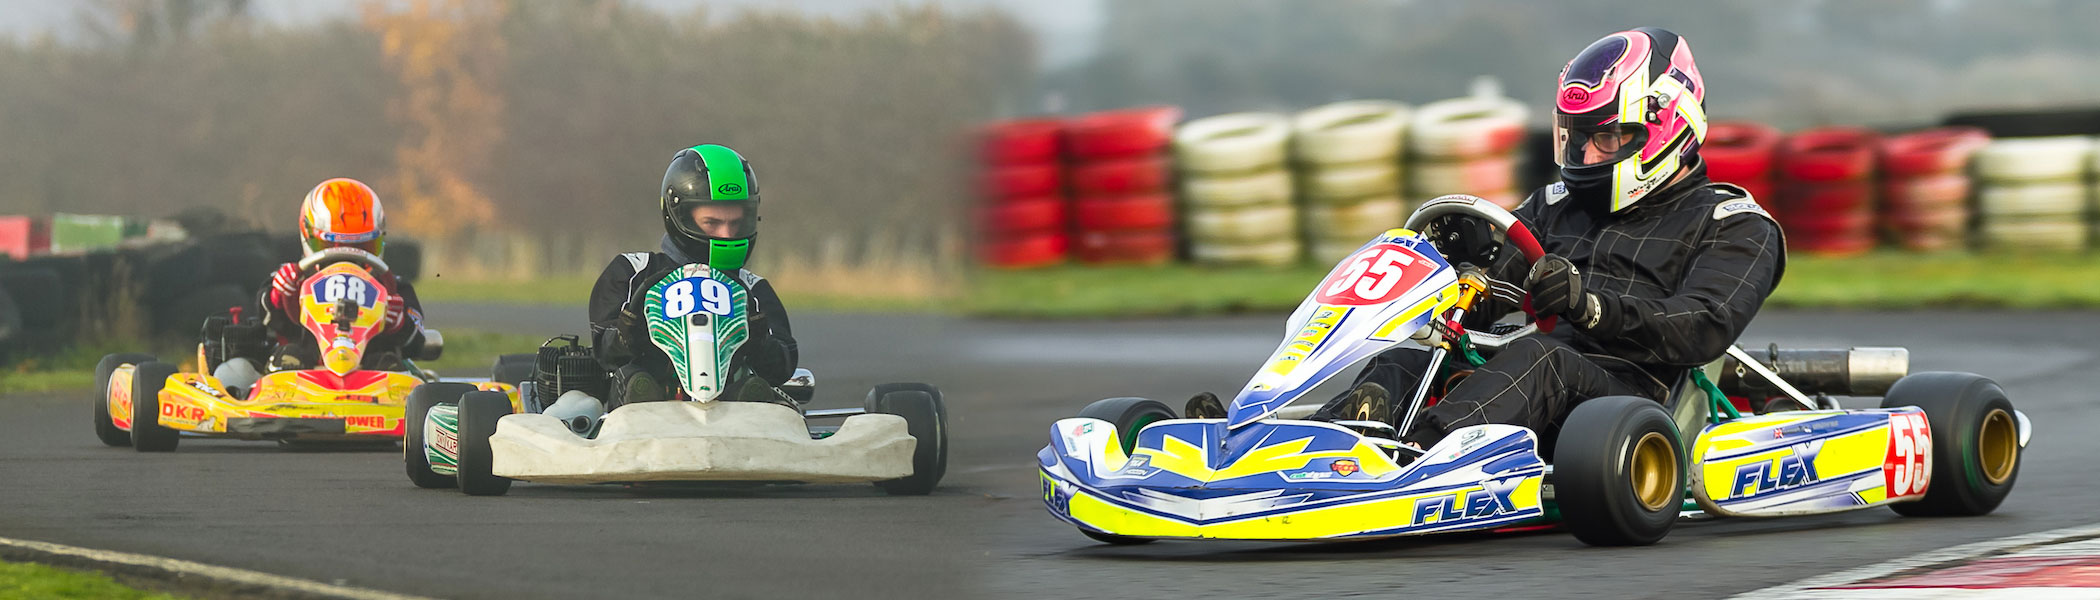 - Track Bookings : We have a full facility that is available for private hire or race hire throughout the year.#Contact Us